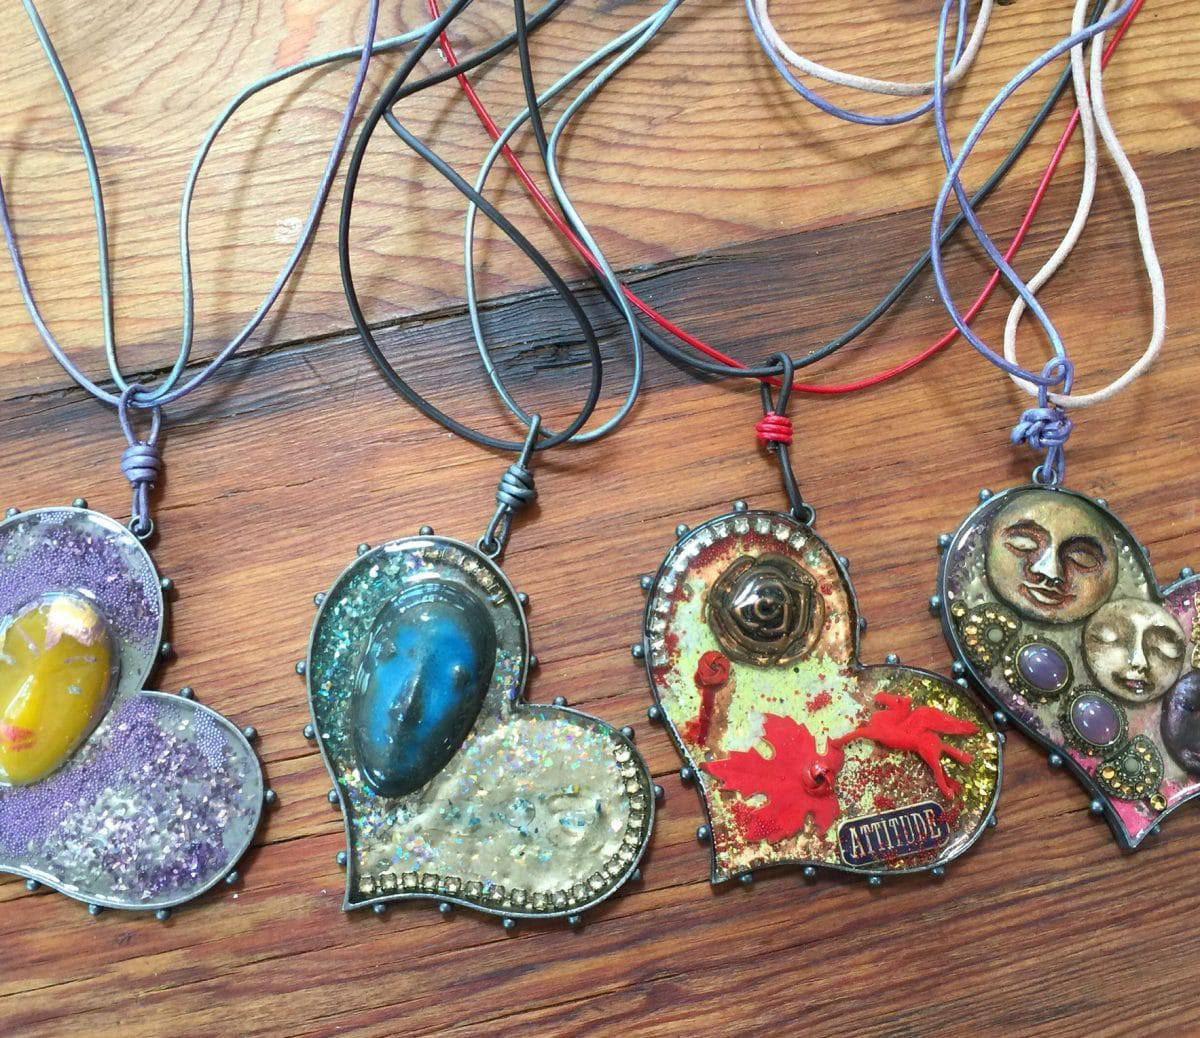 These faces showcase the leather jewelry and ice resin jewelry of Mary Ellen Beads Albuquerque.